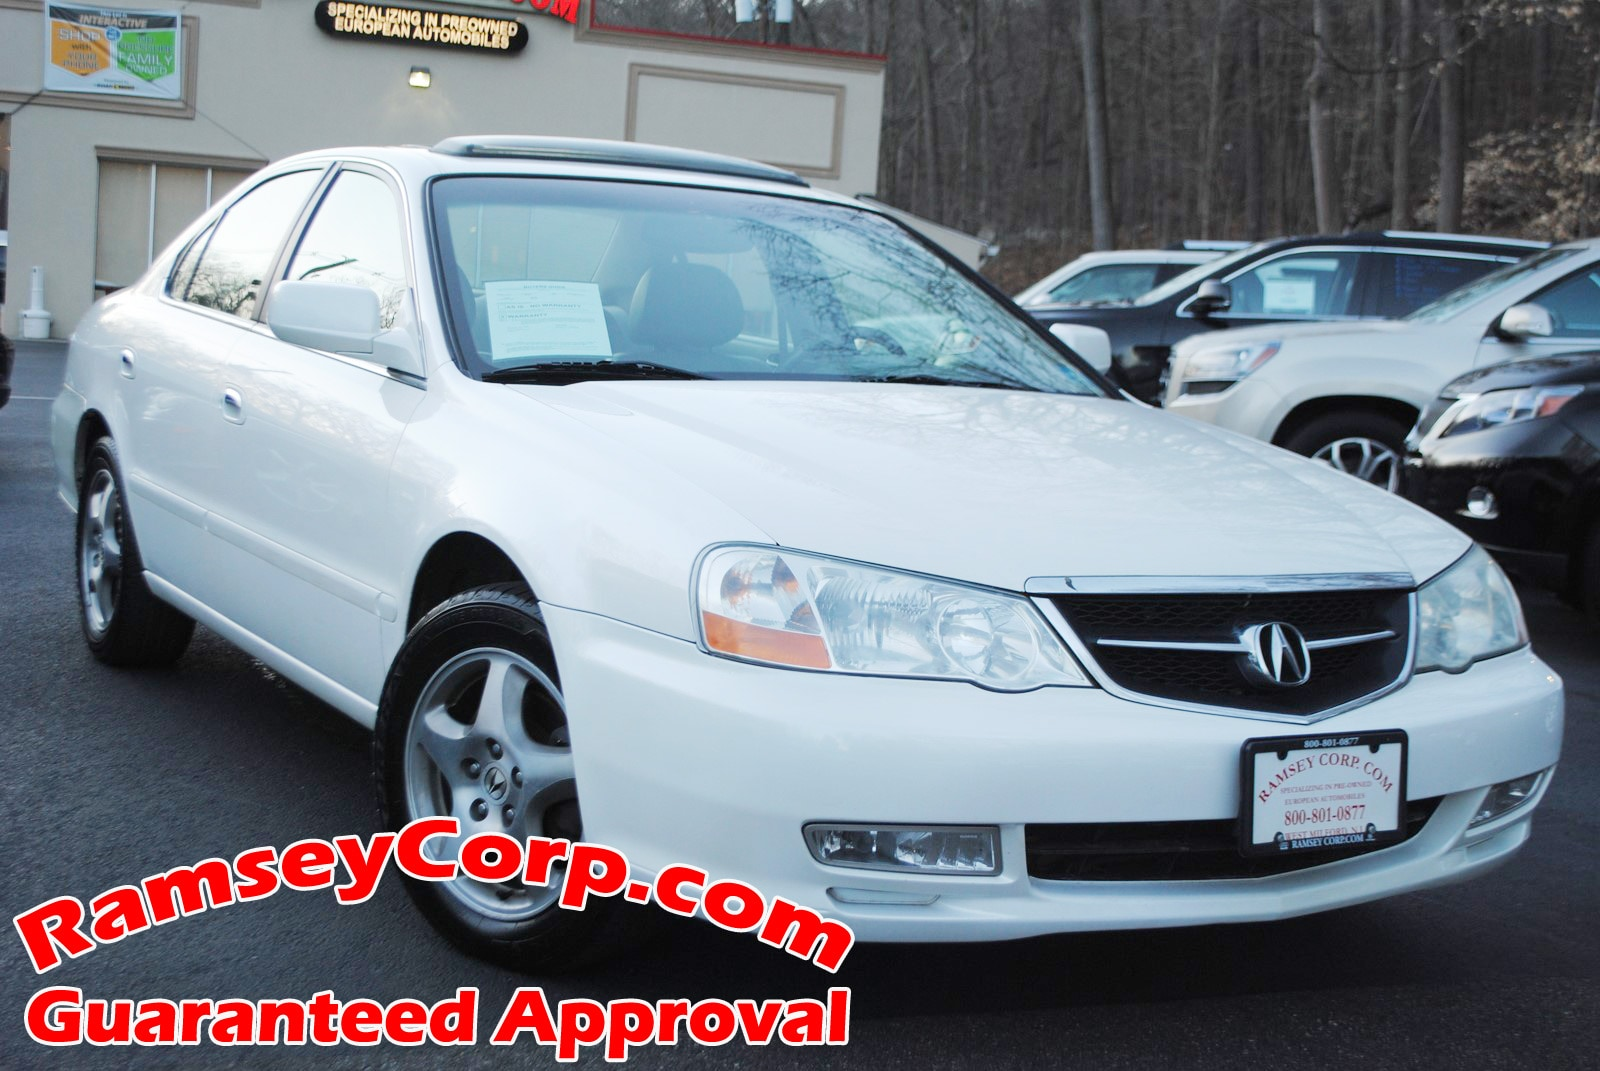 used 2003 acura tl for sale west milford nj rh ramseycorp com Acura TL Grill Acura TL Grill